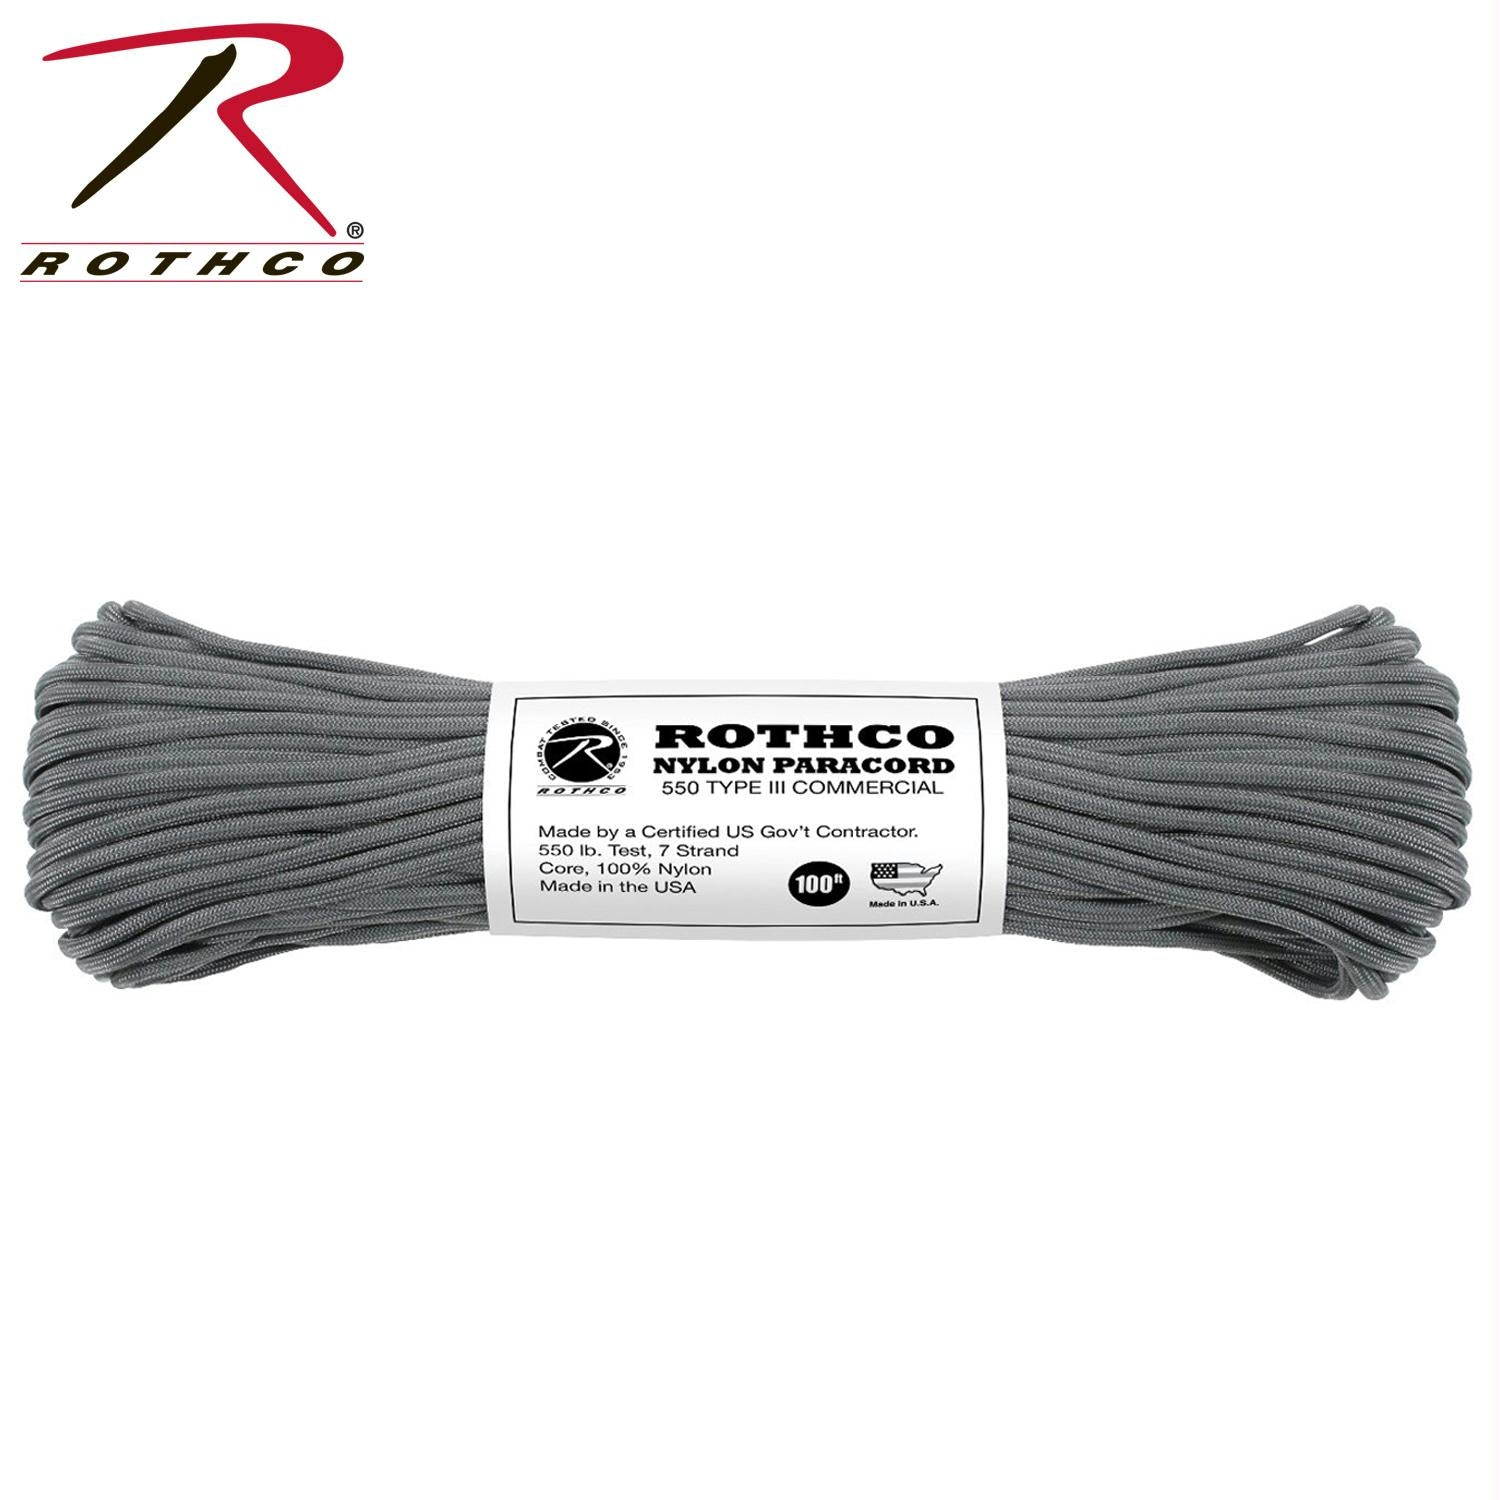 Rothco Nylon Paracord Type III 550 LB 100FT